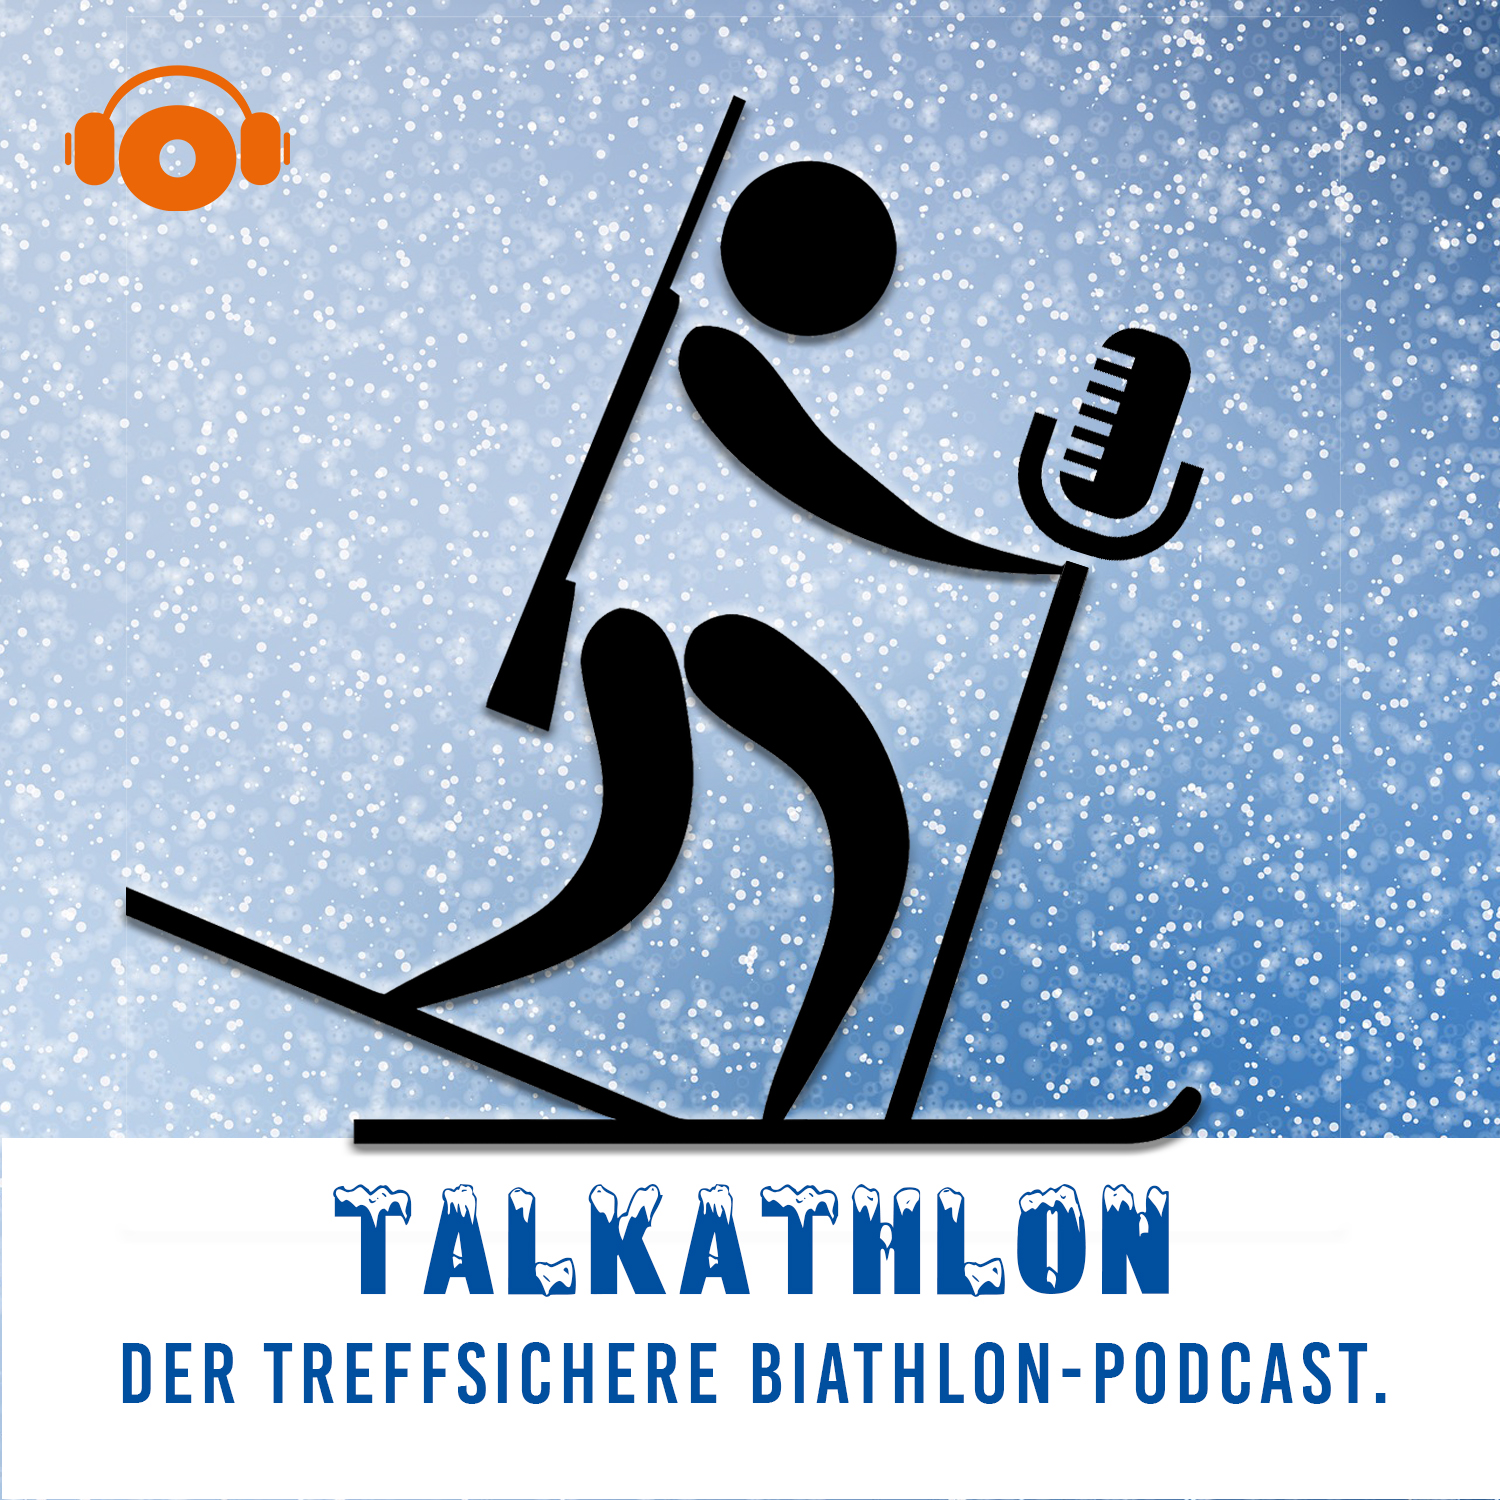 Talkathlon - Der treffsichere Biathlon-Podcast.